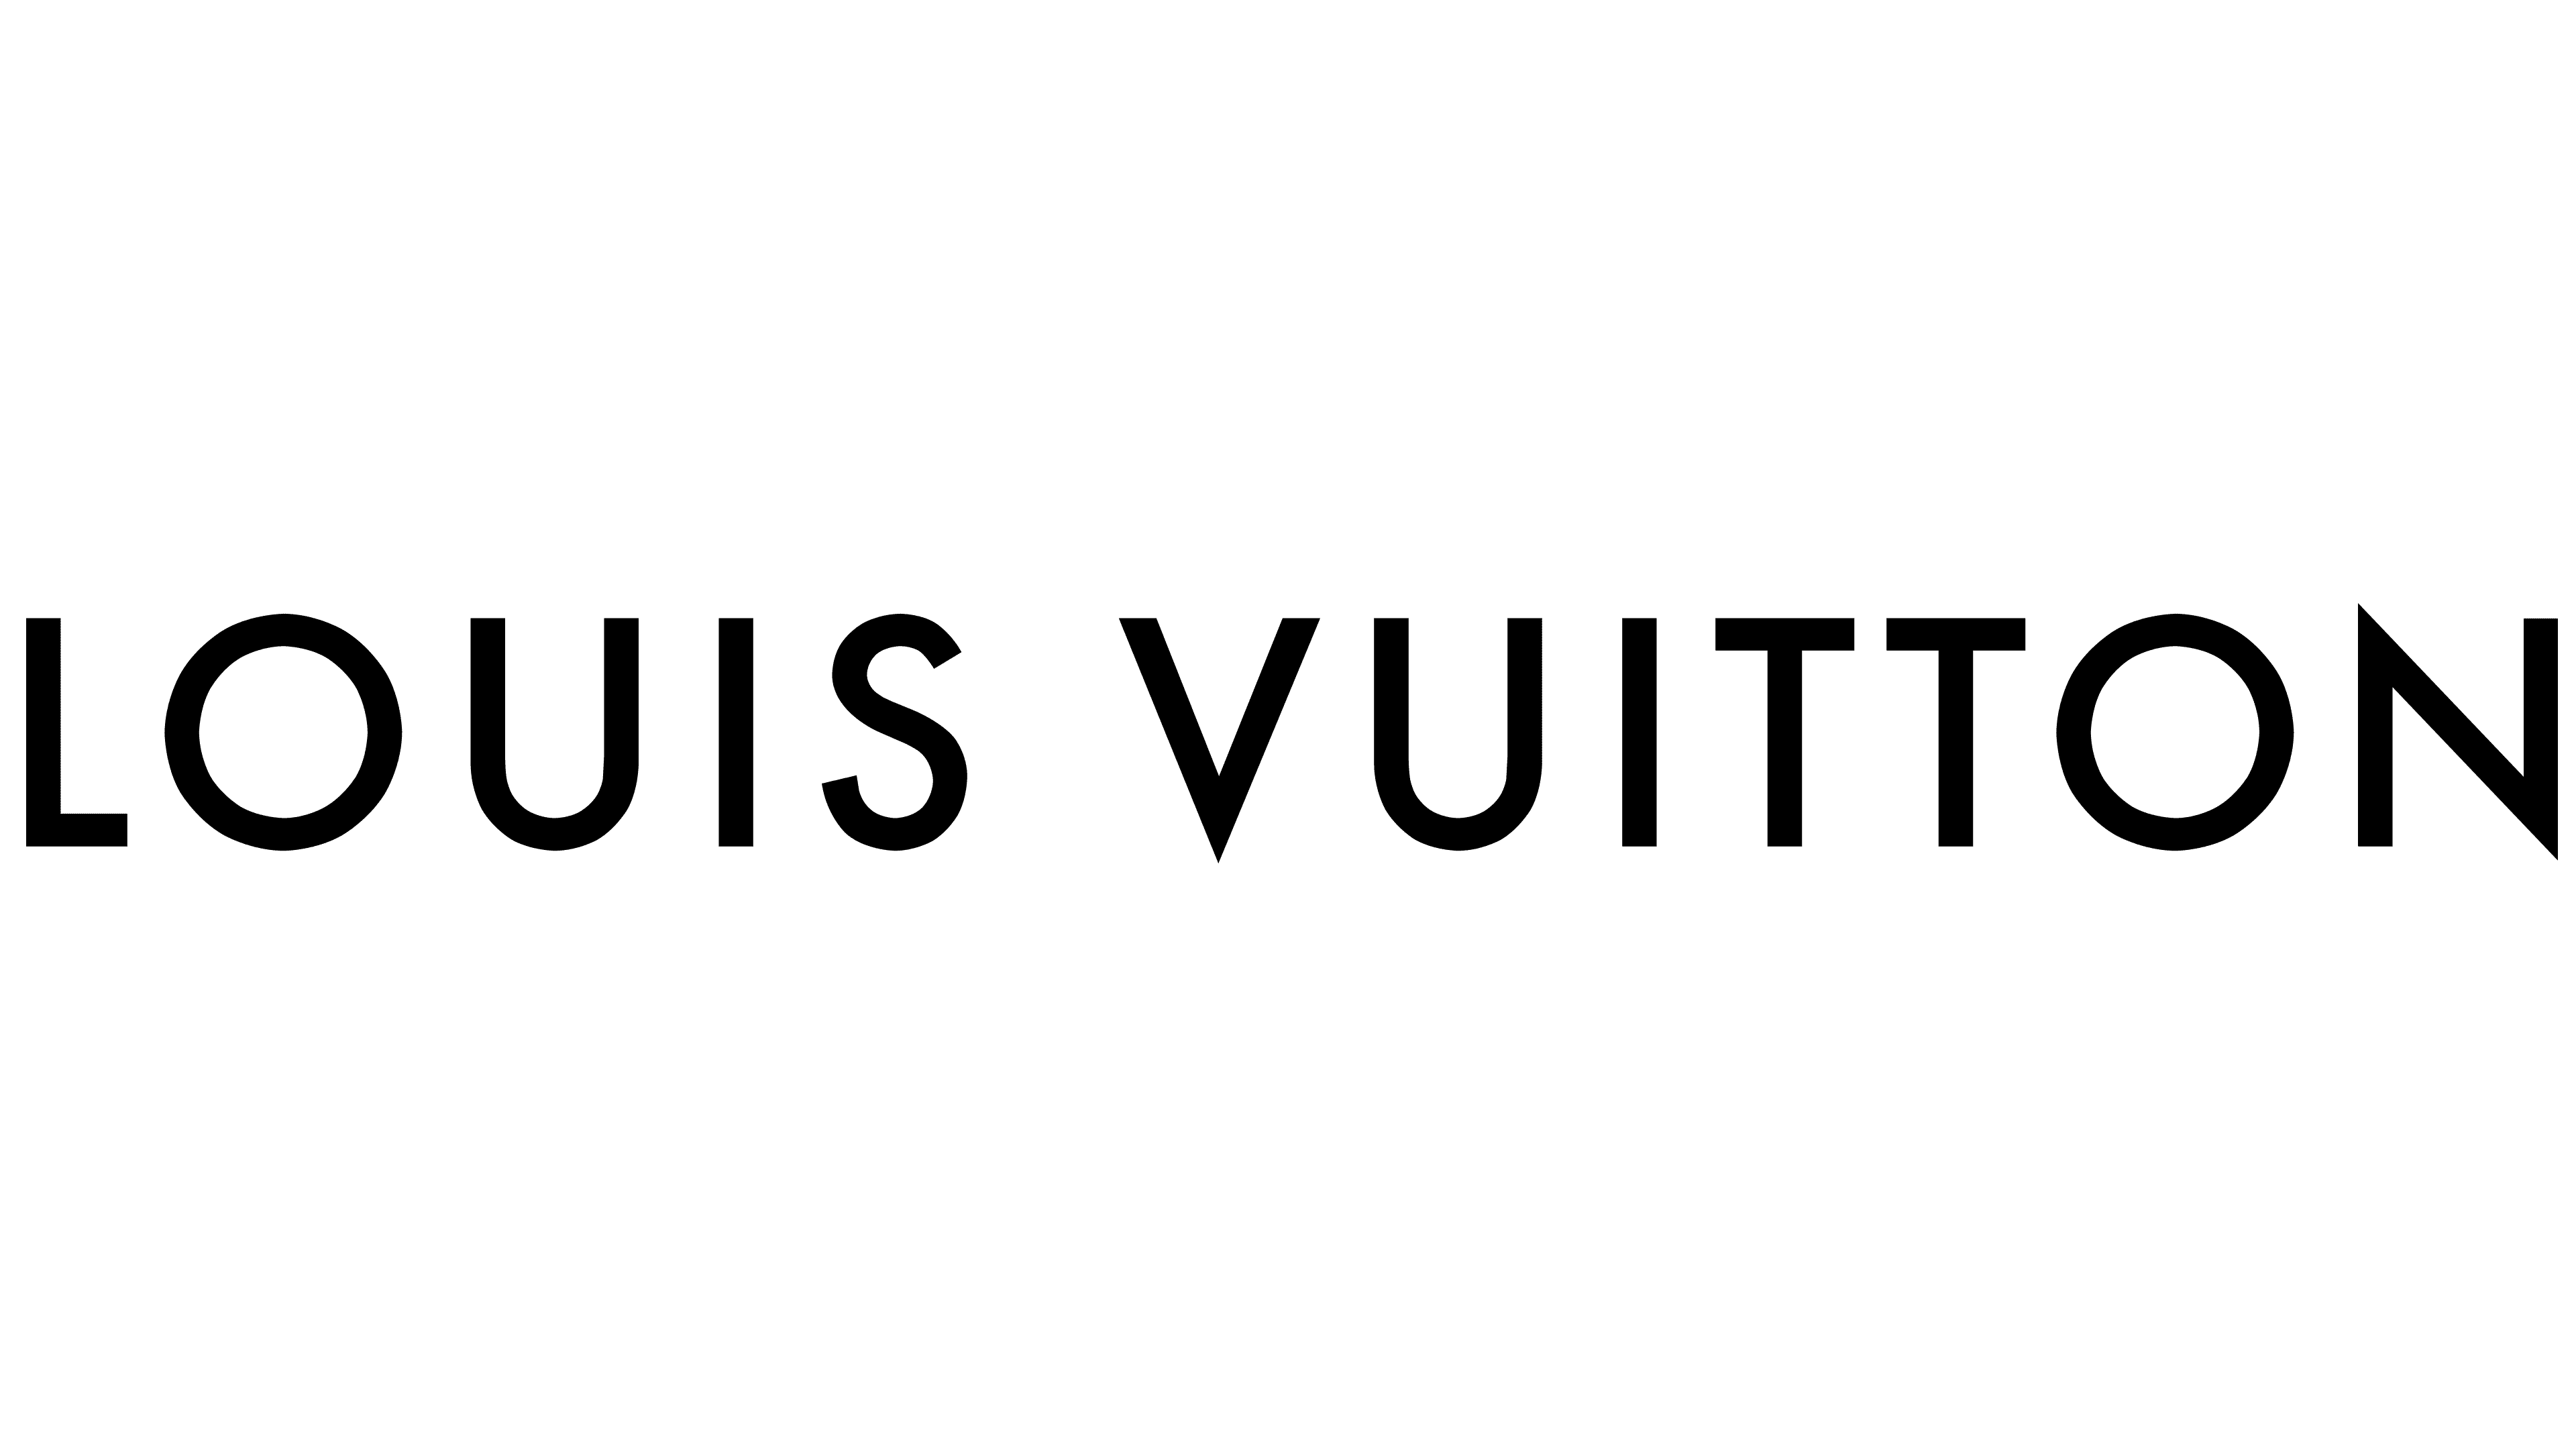 Louis Vuitton Logo The Most Famous Brands And Company Logos In The World